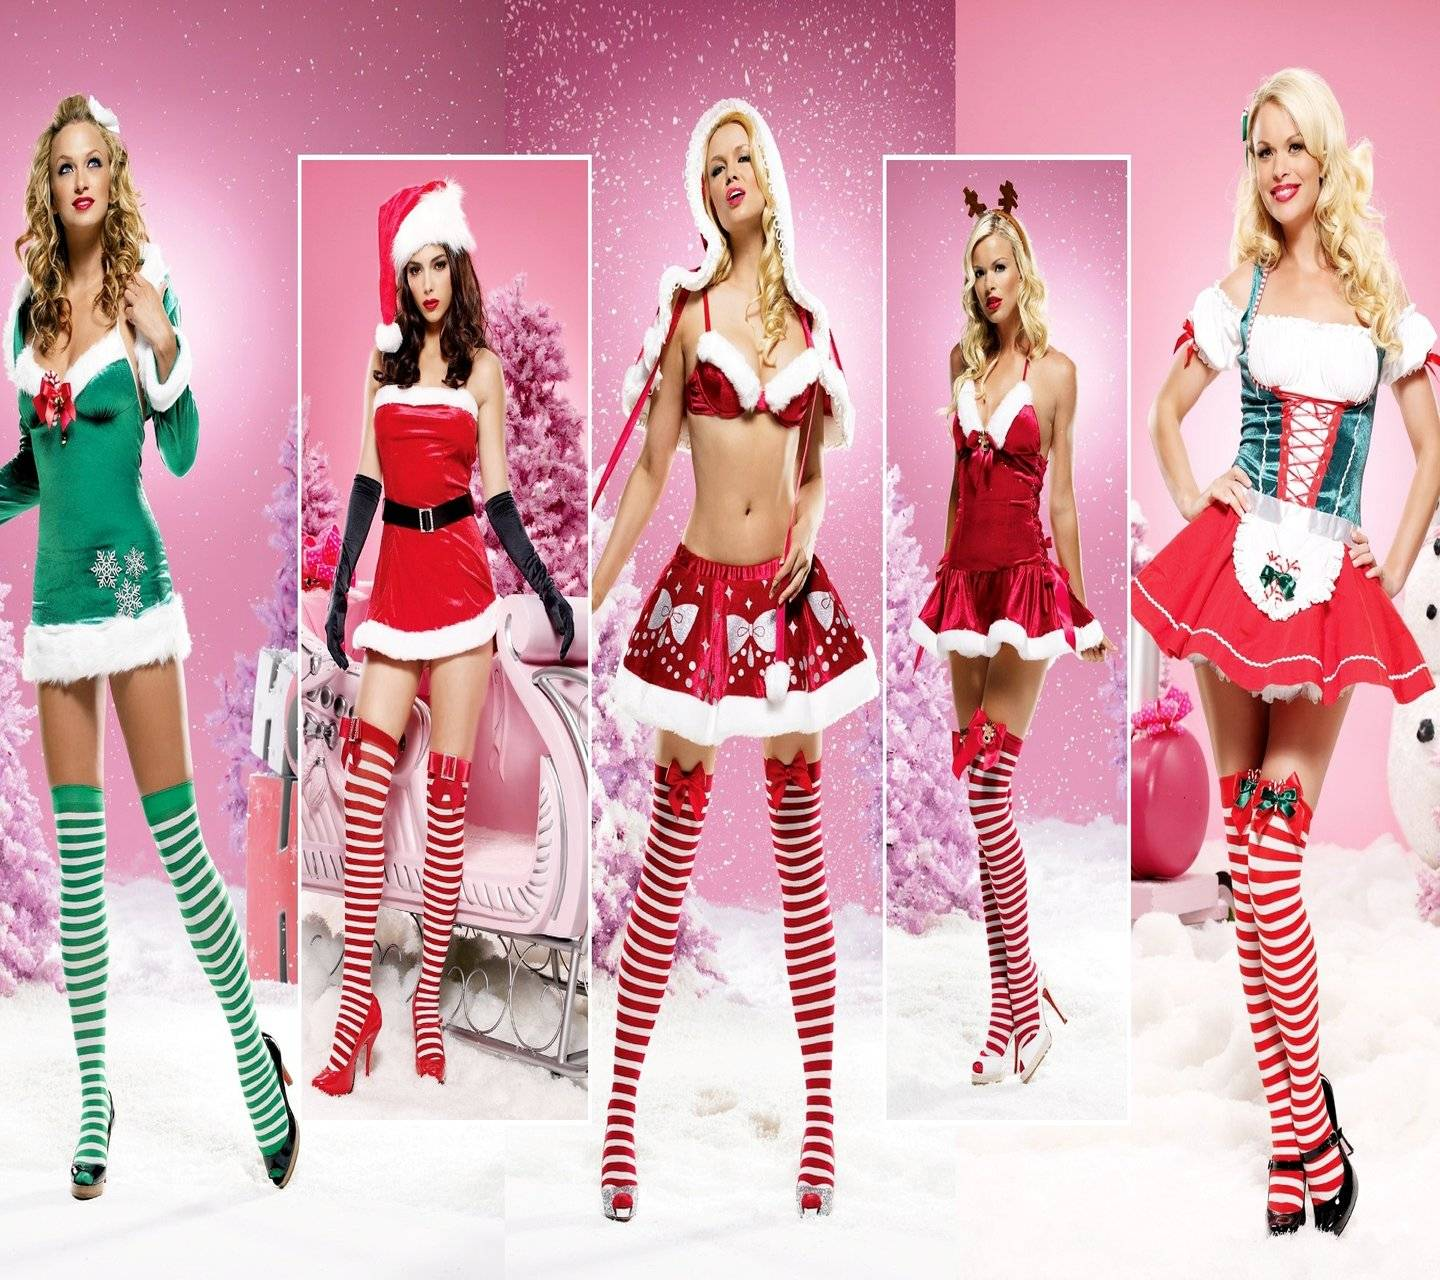 Christmas Babes.Christmas Babes Wallpaper By Lovey 26 Free On Zedge